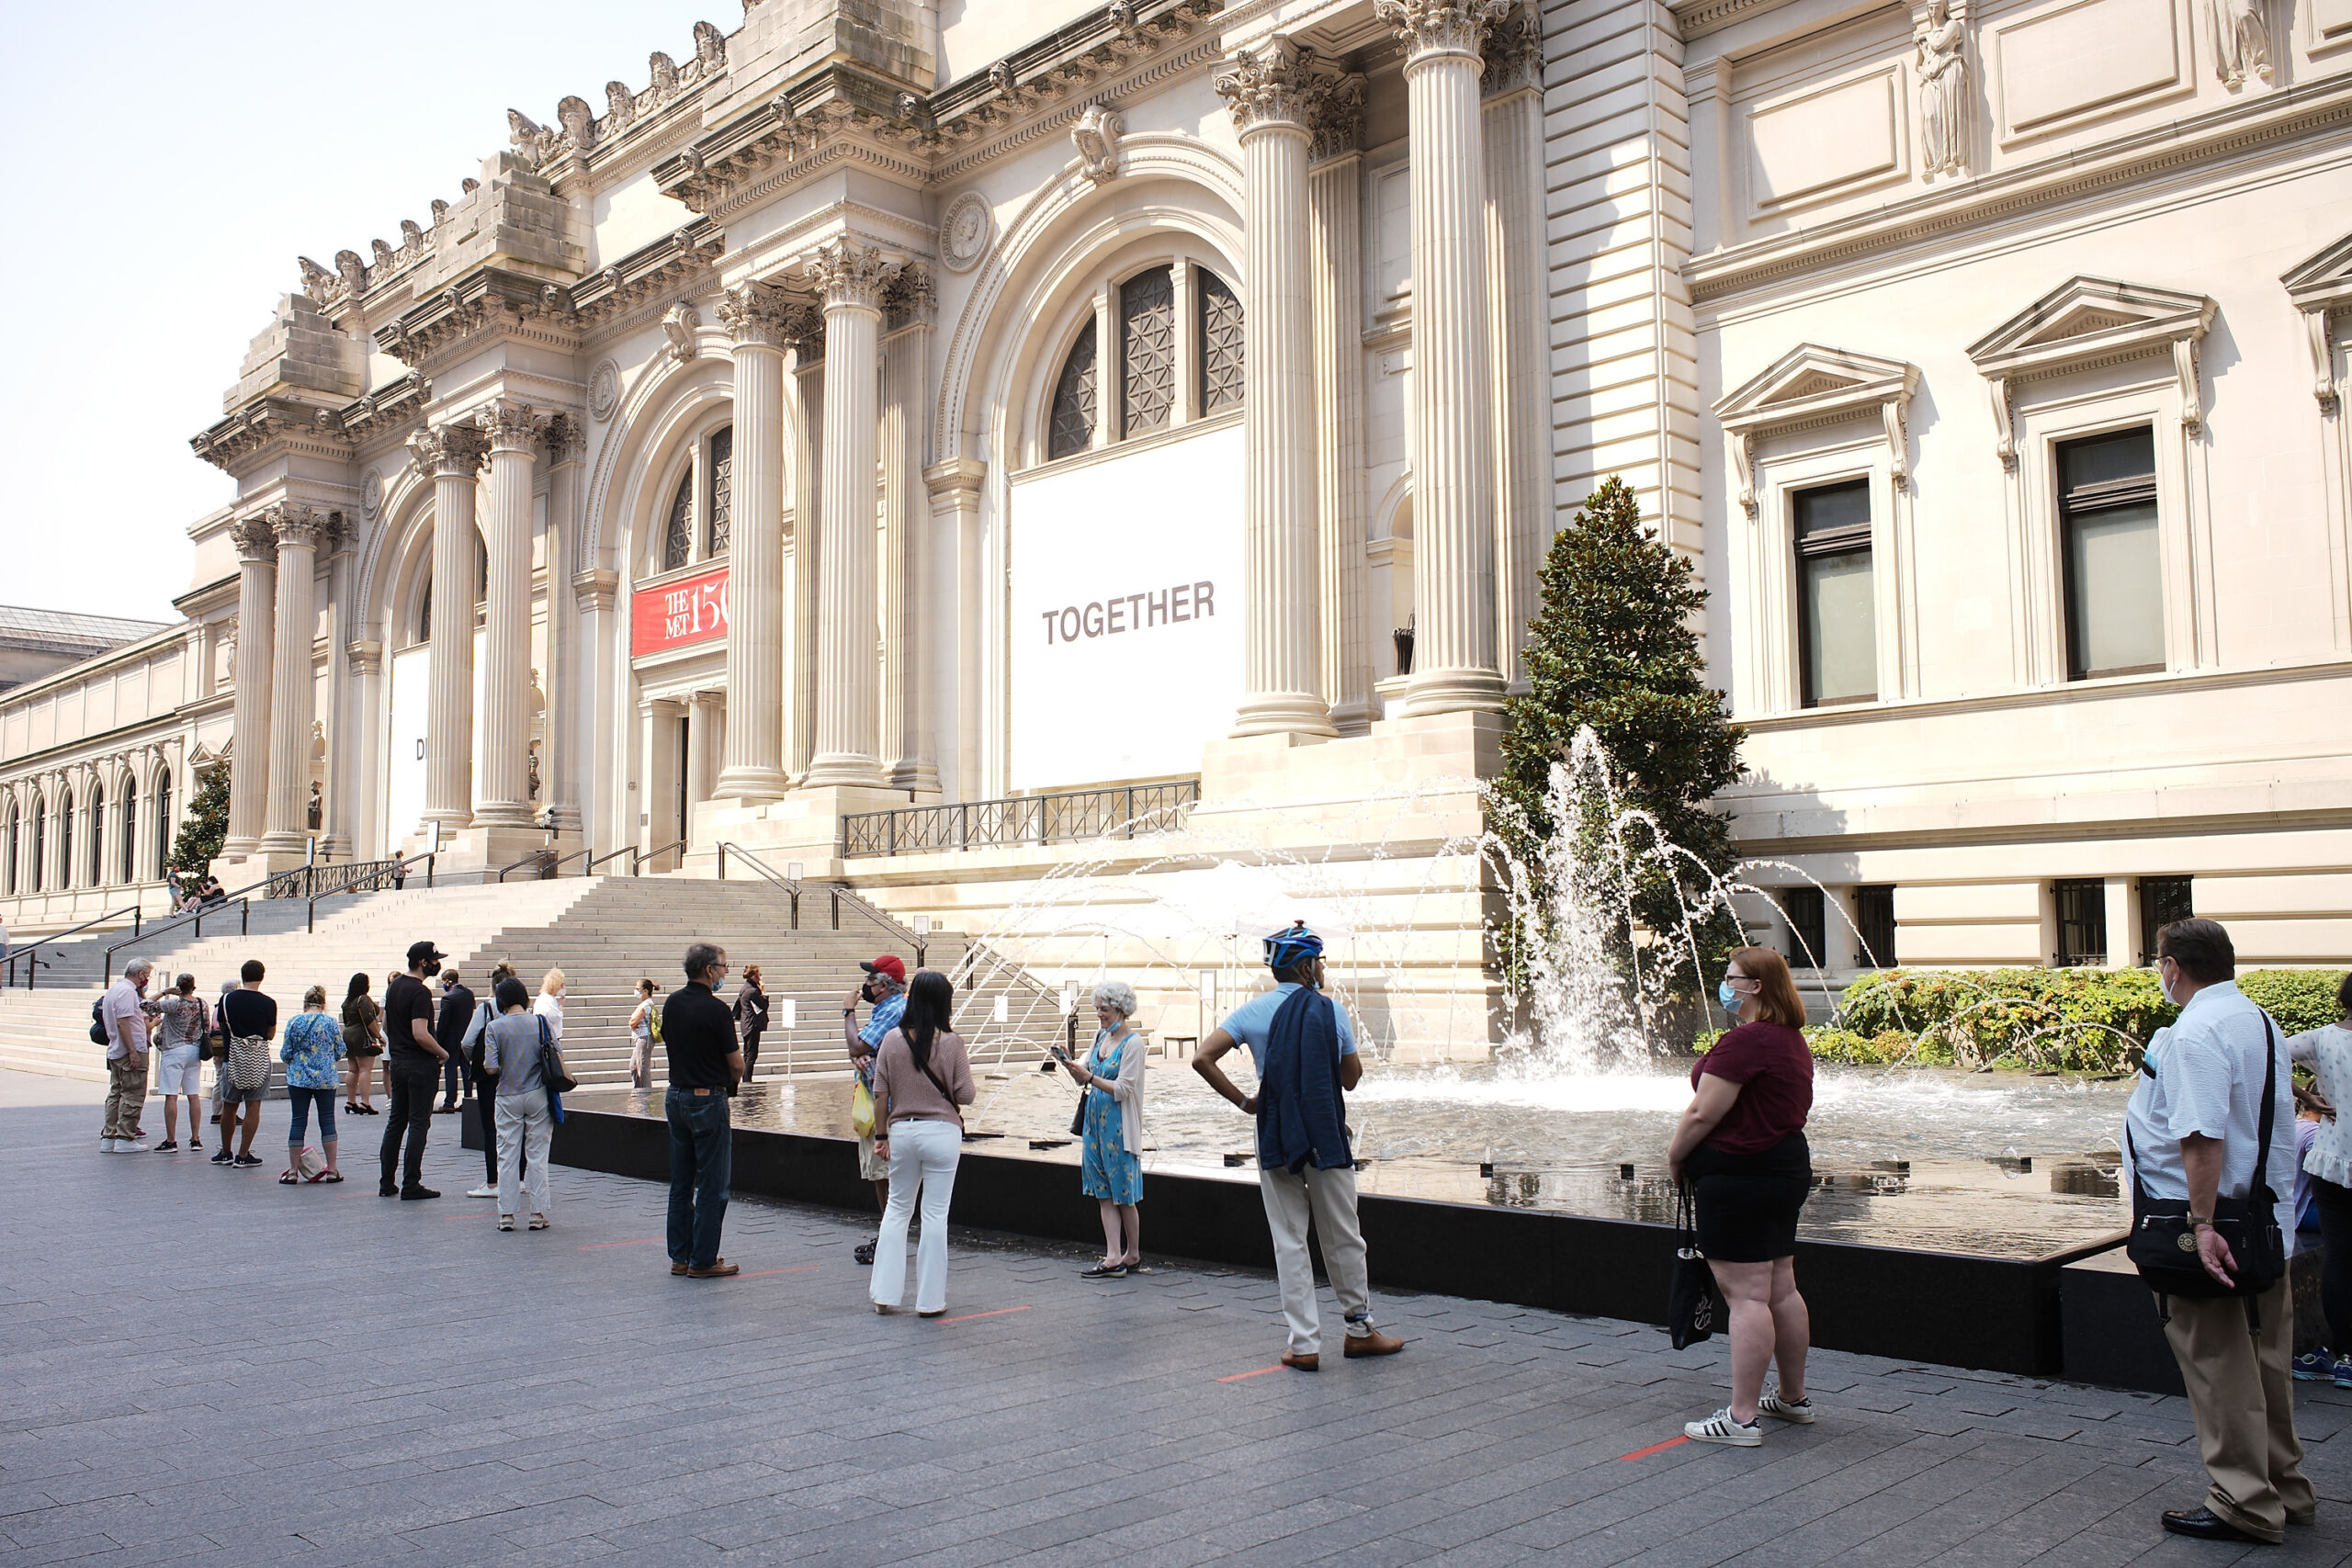 Visitors queue to enter as The Met reopens in August 2020 after Covid 19 lockdown closure. Credit: Taylor Hill © Taylor Hill, 2020. Image courtesy PBS.